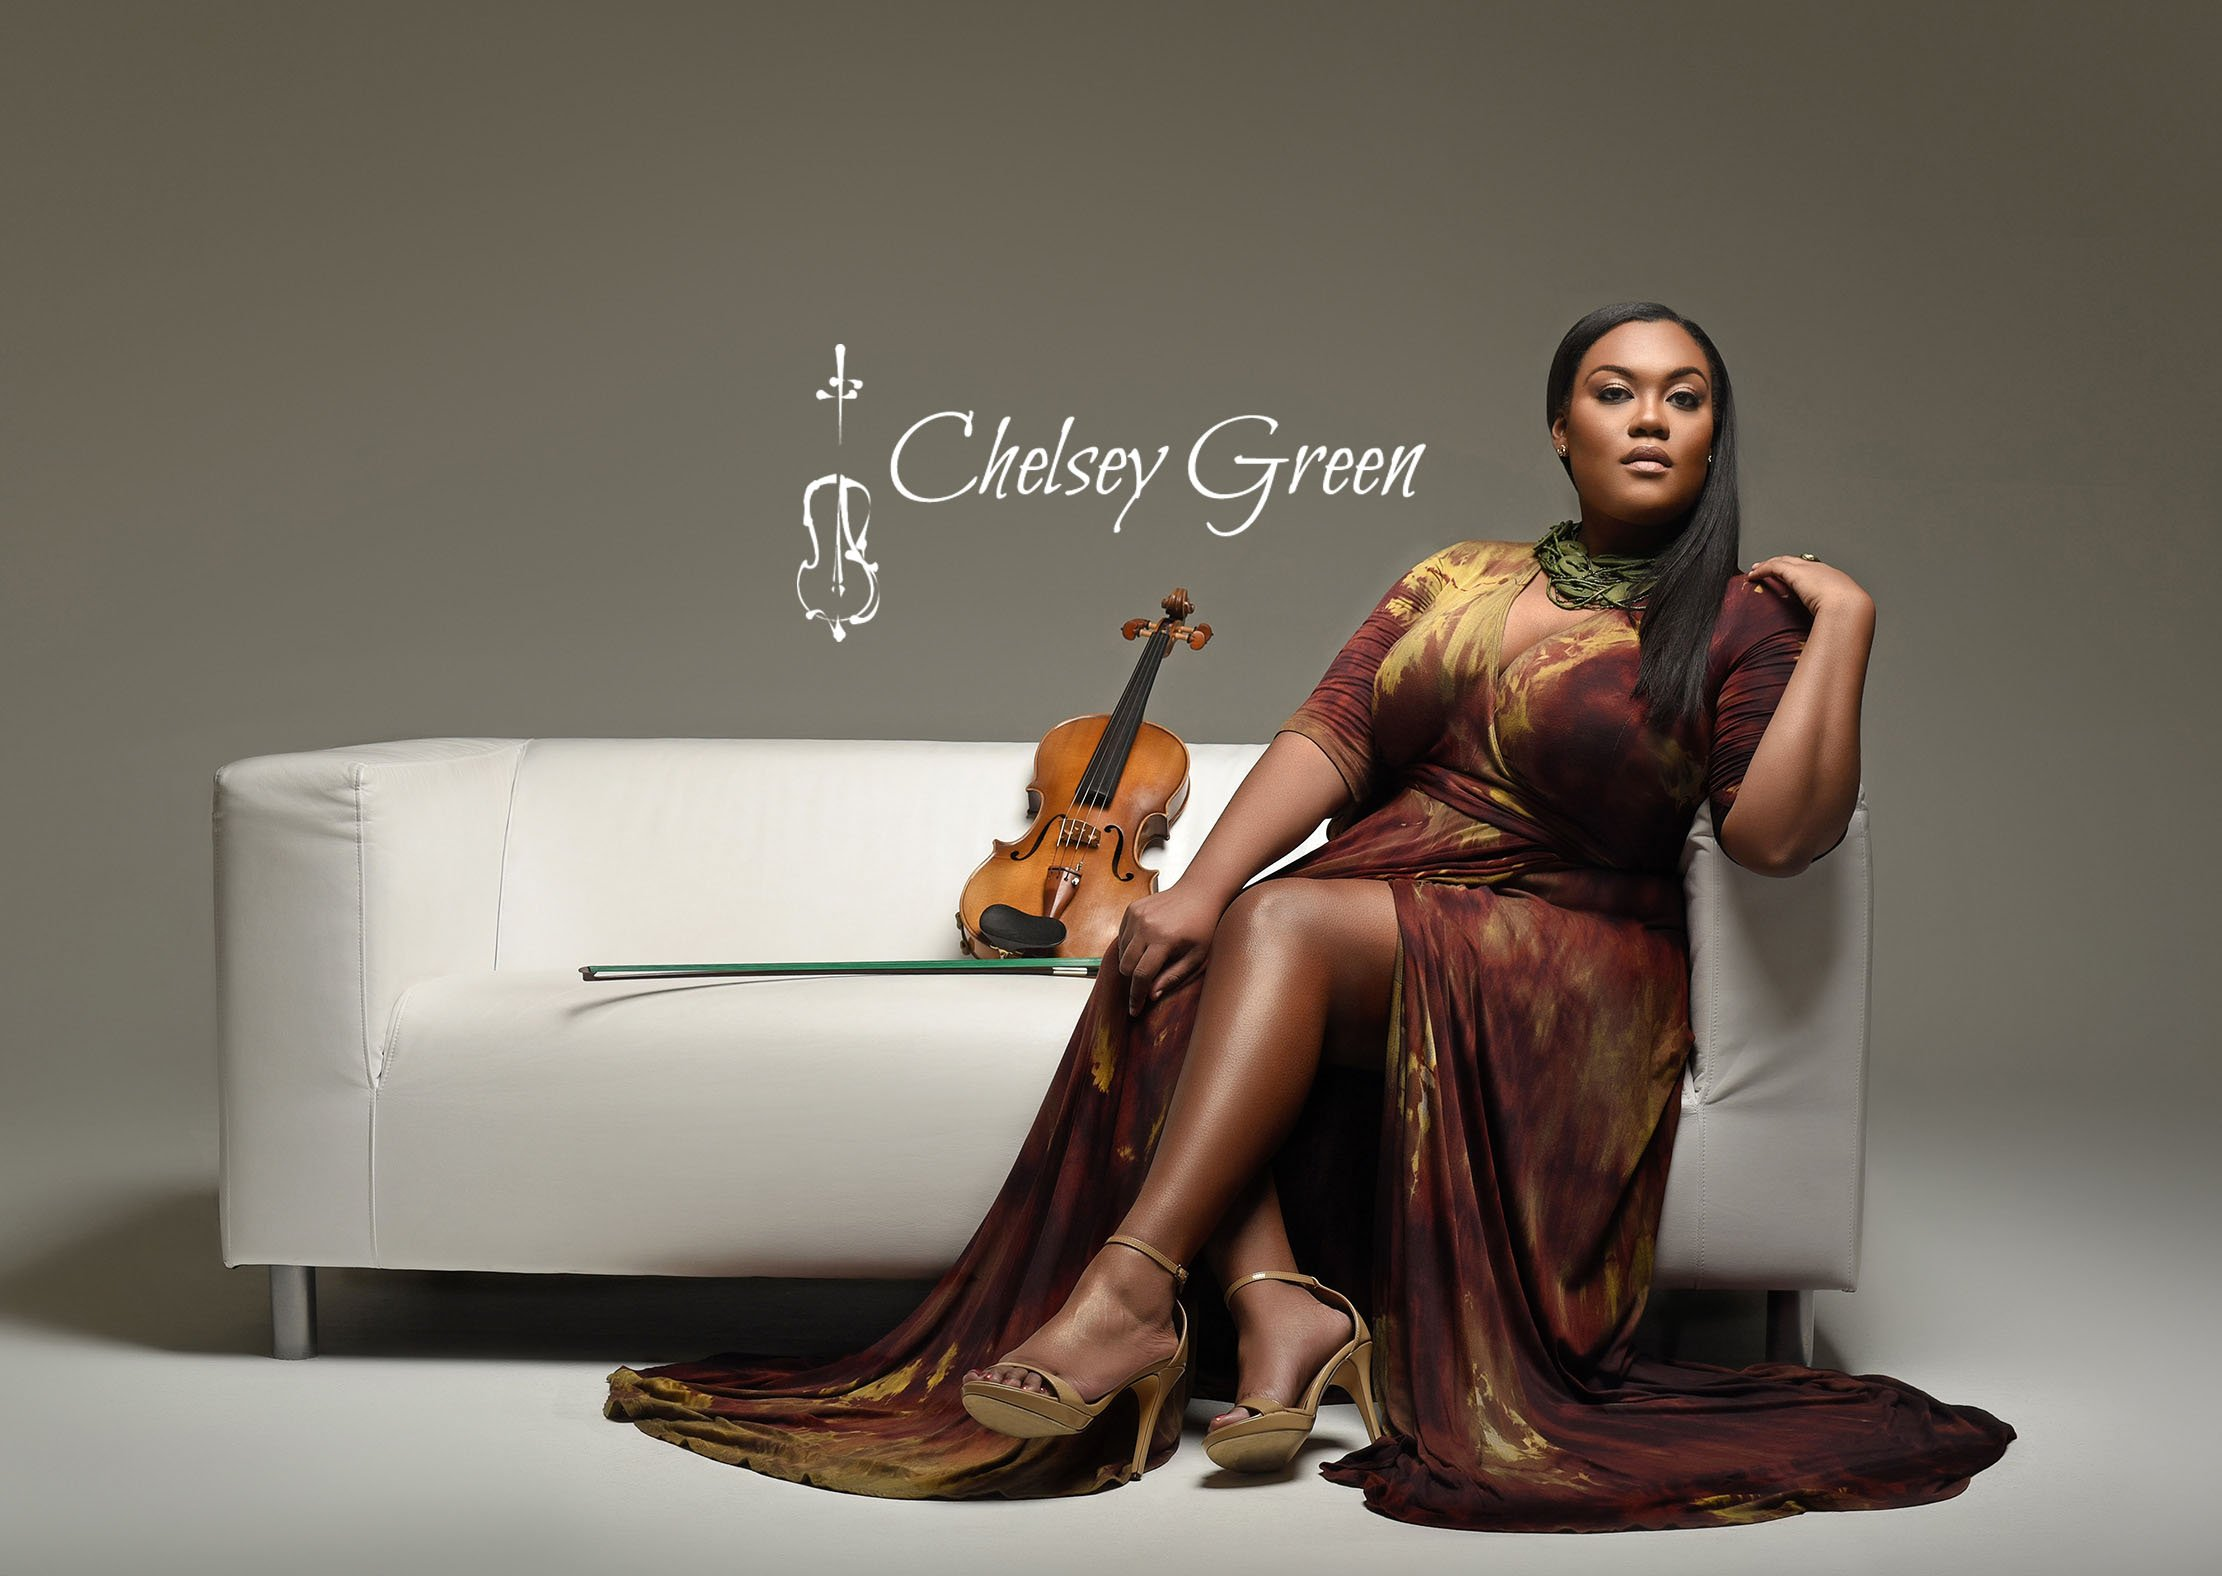 chelsey-green-violin-header-photo